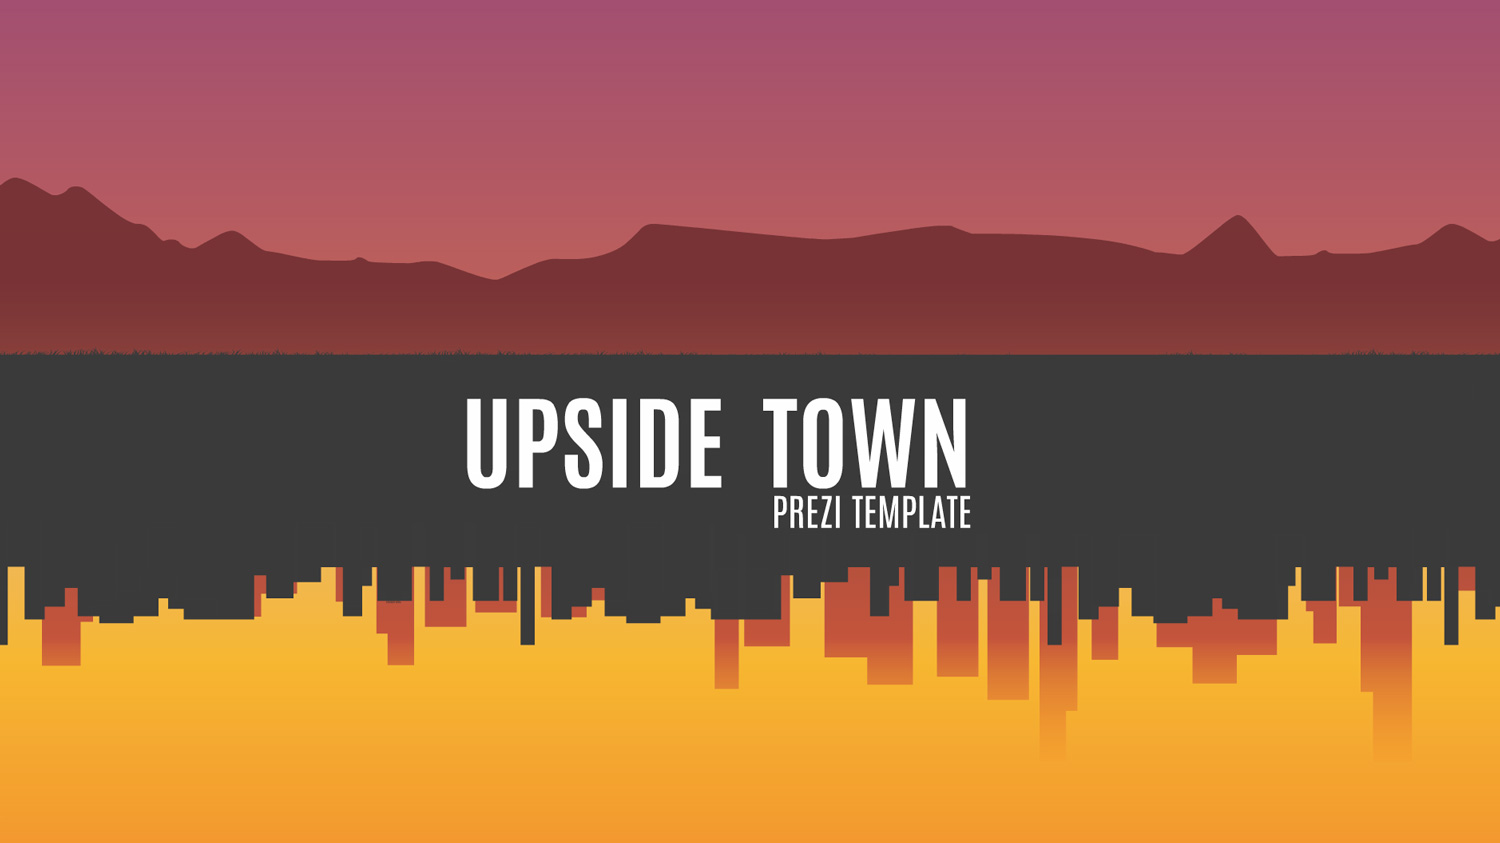 Upside town Prezi template 1500px from Prezibase